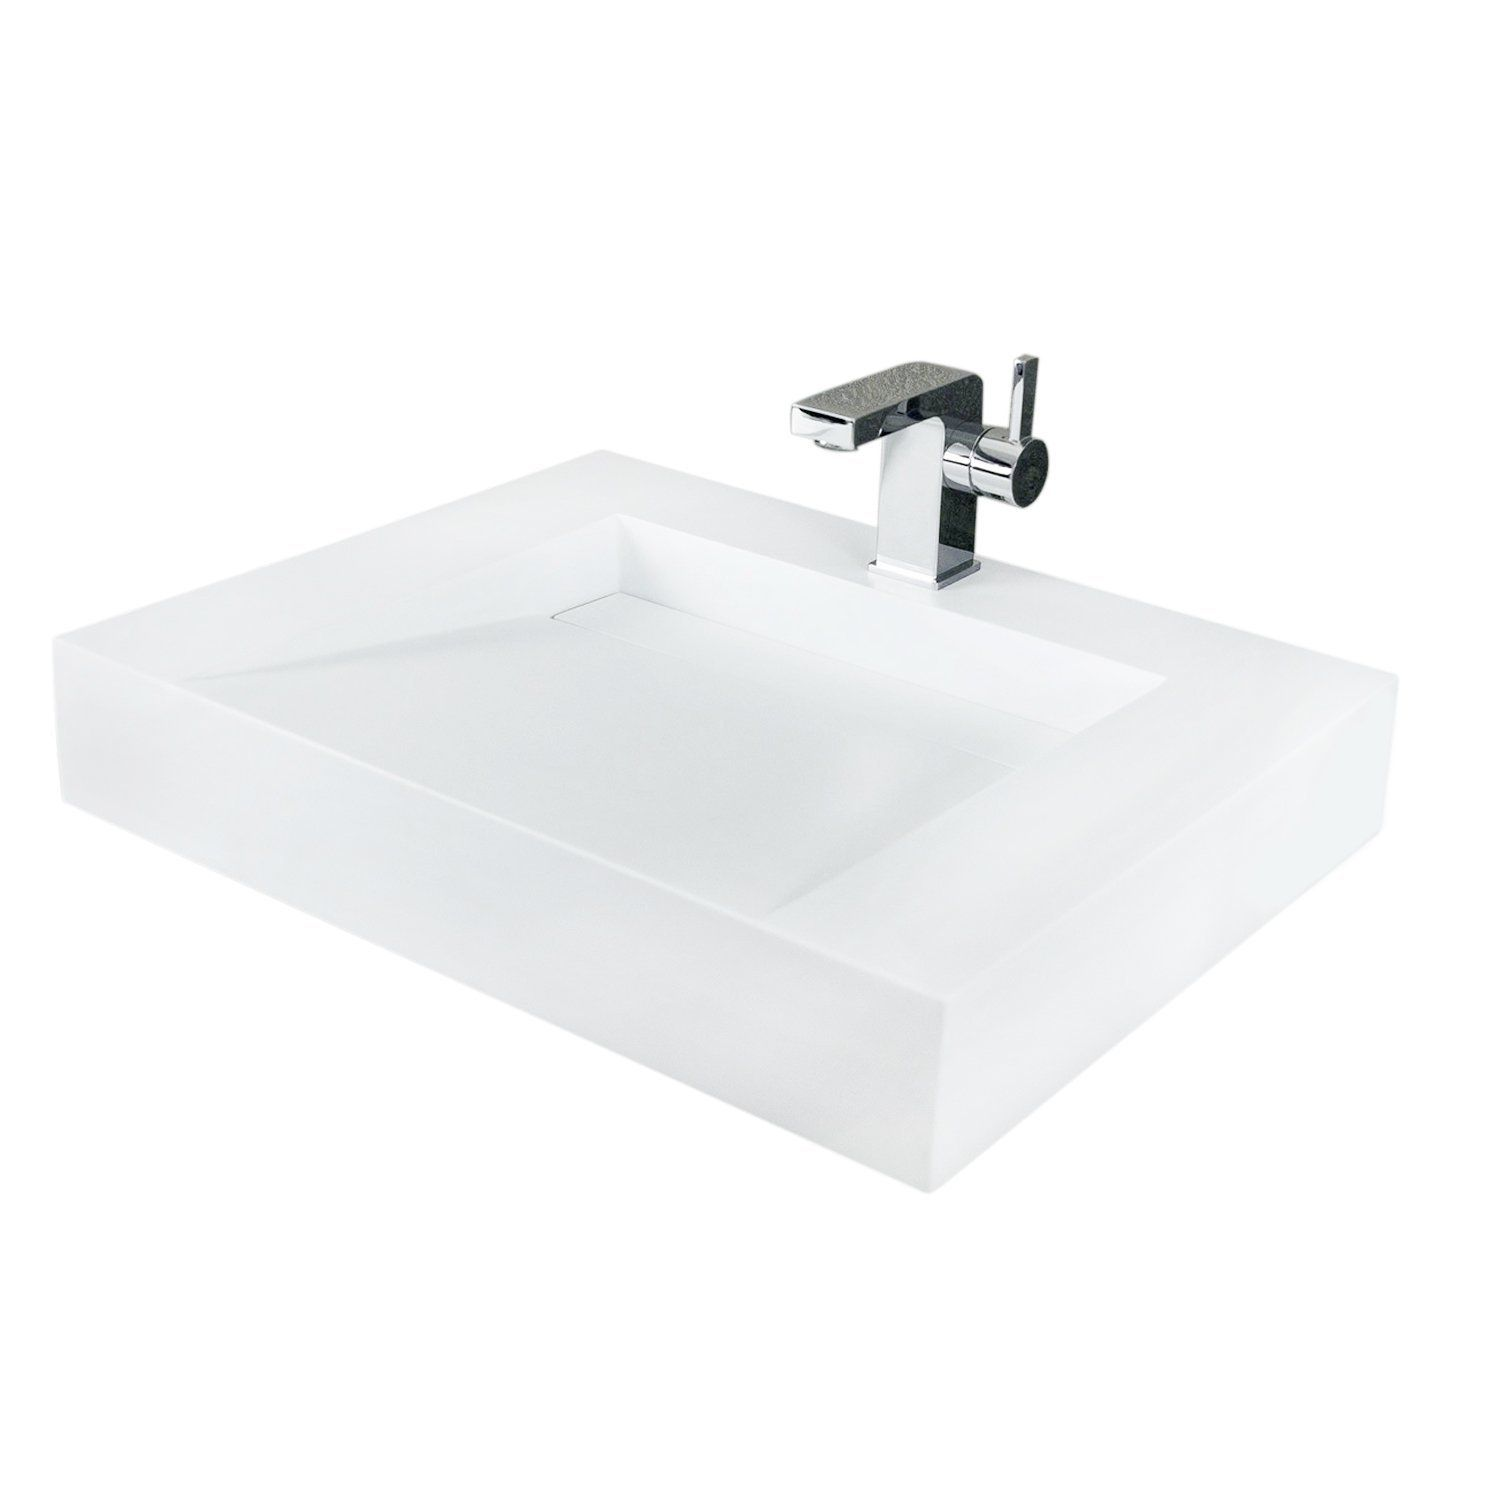 Dax Solid Surface Rectangle Single Bowl Top Mount Bathroom Sink